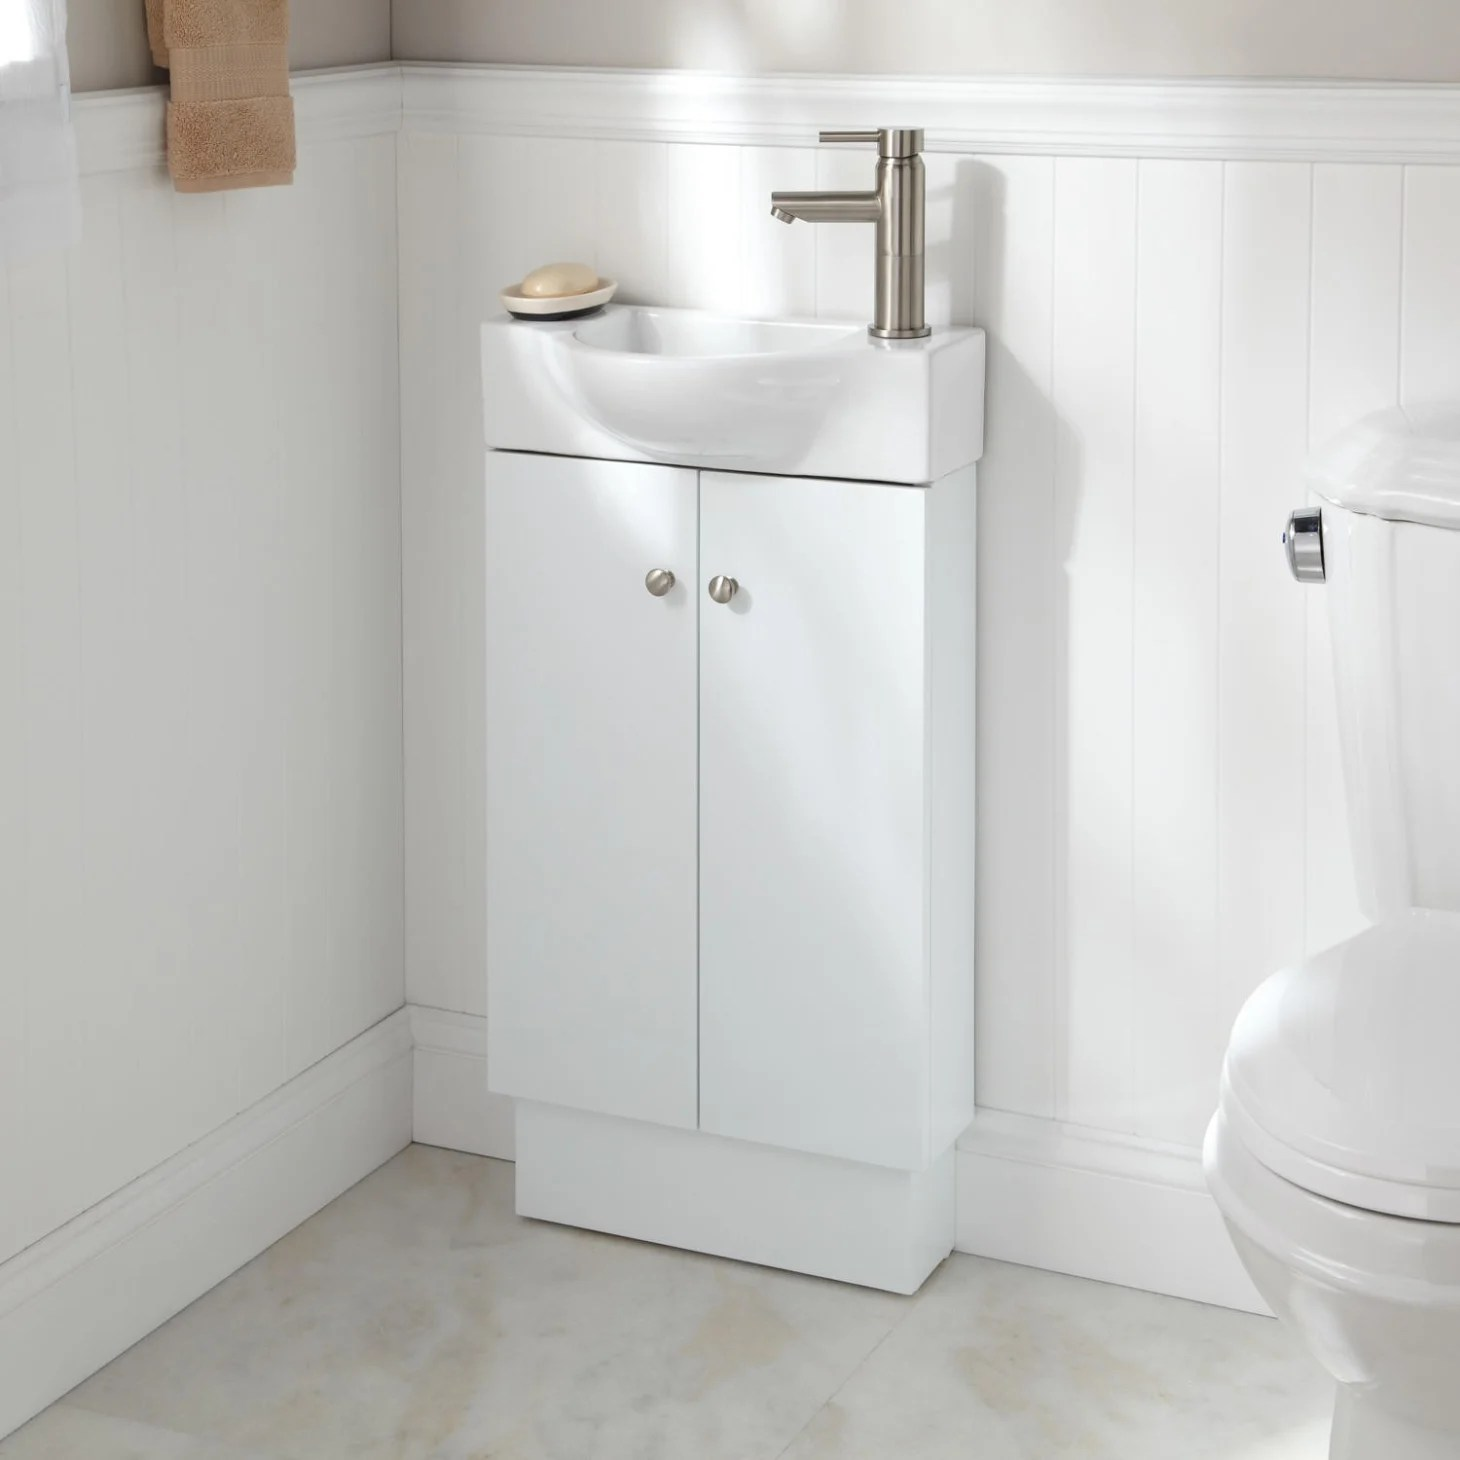 Small Bathroom Vanities and Sinks for Tiny Spaces ... on Small Space Bathroom  id=89012